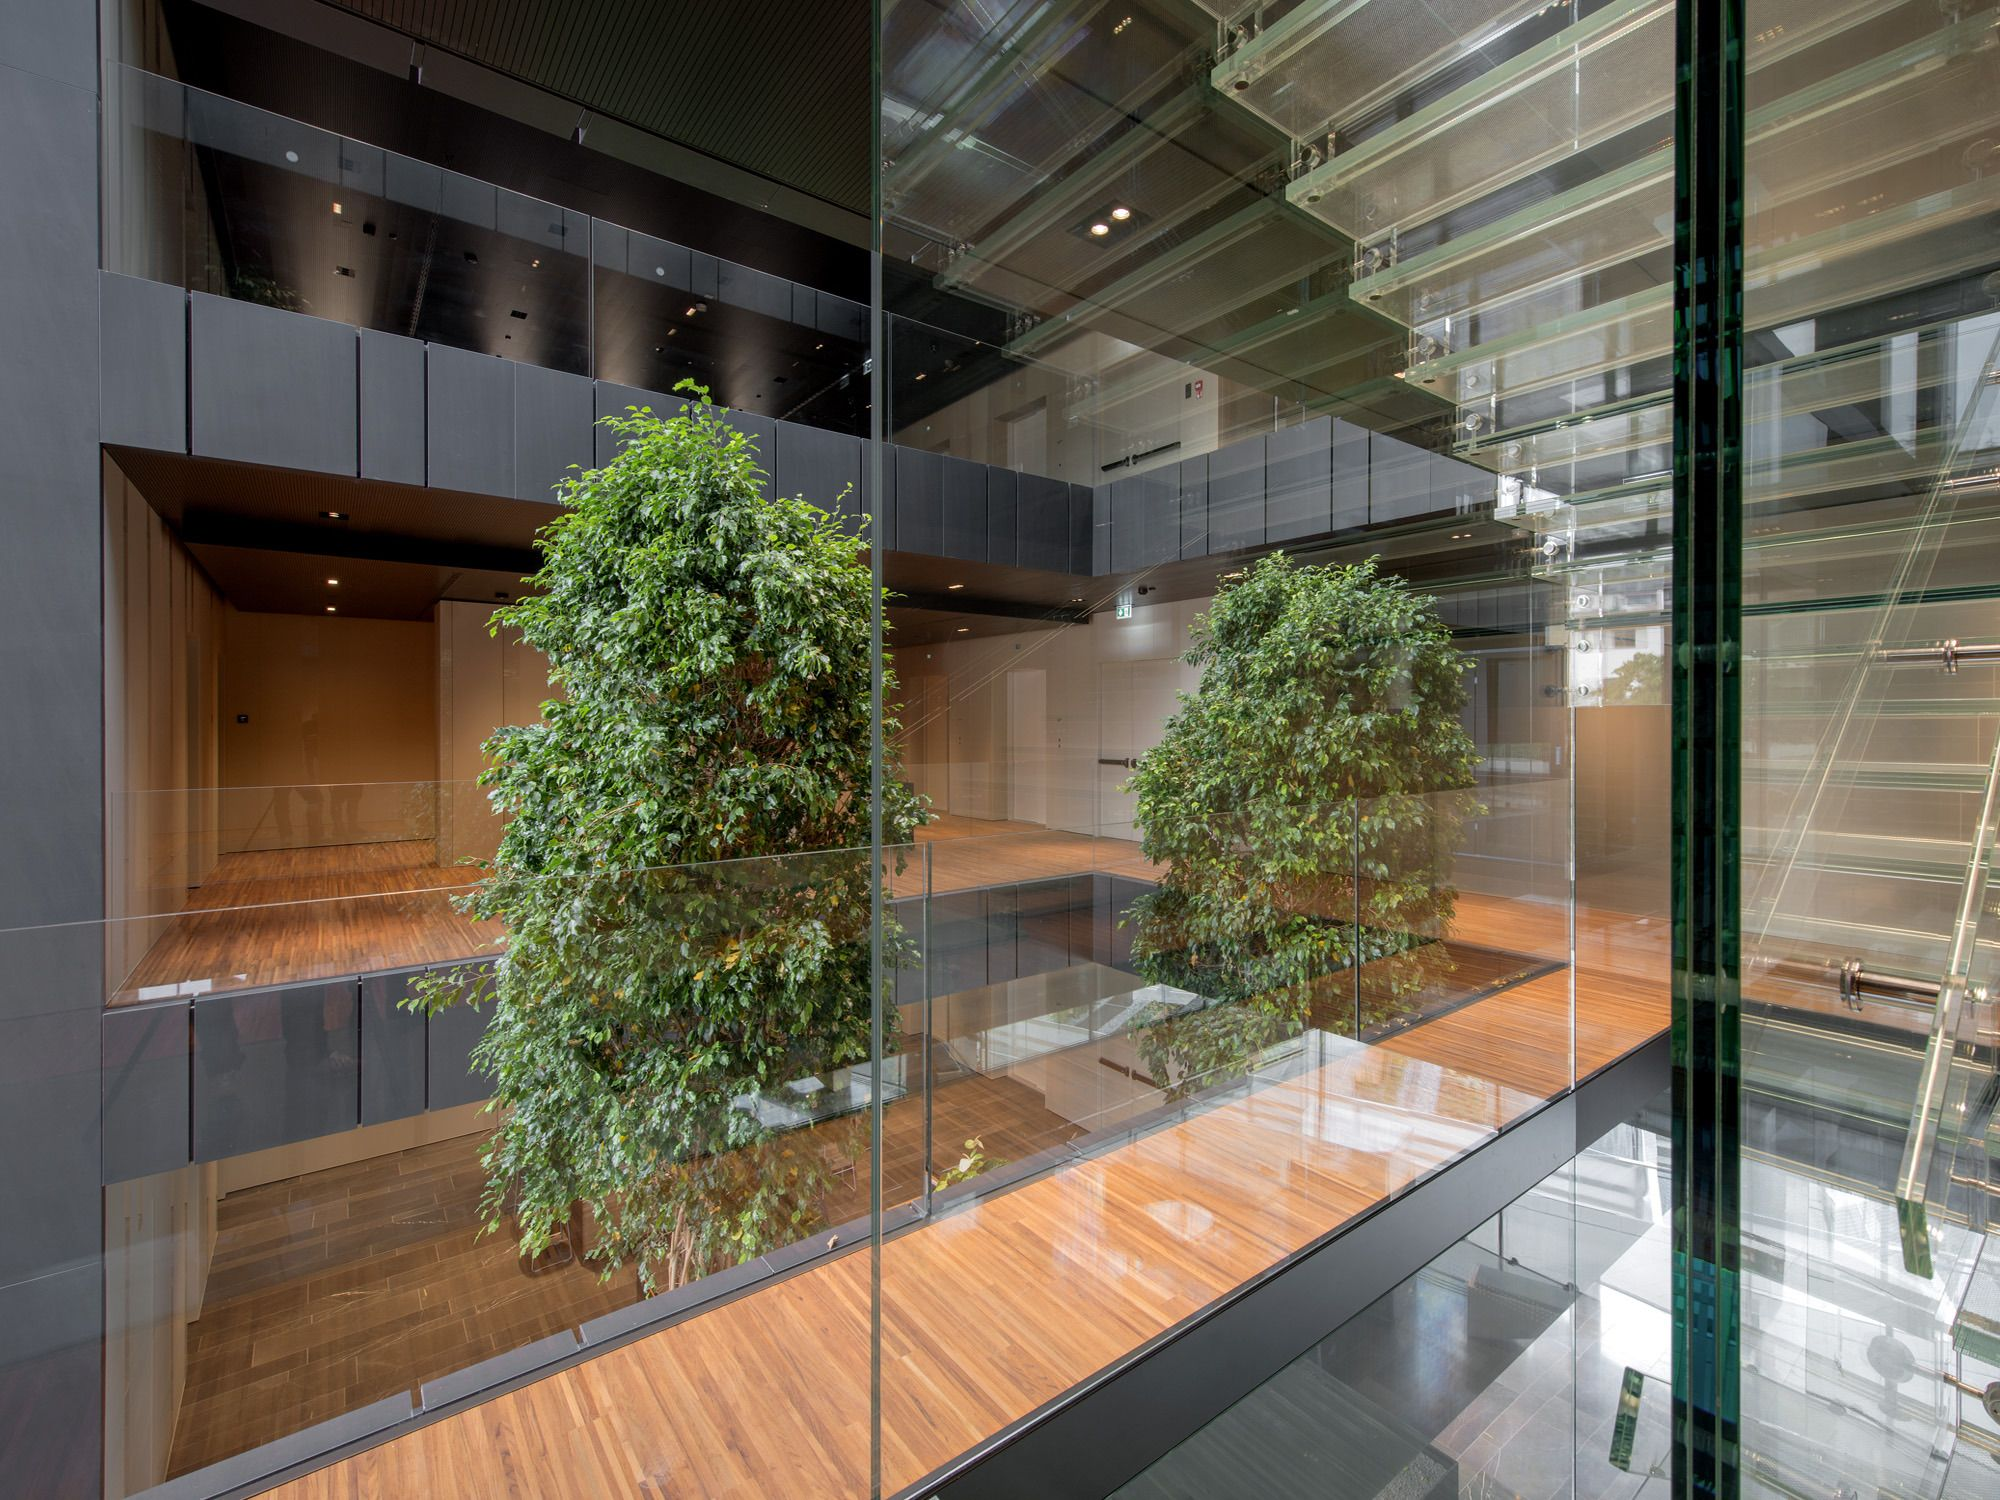 Agb Asset Bank Headquarter Picture Gallery In 2020 Picture Gallery Interior Decorating Pictures